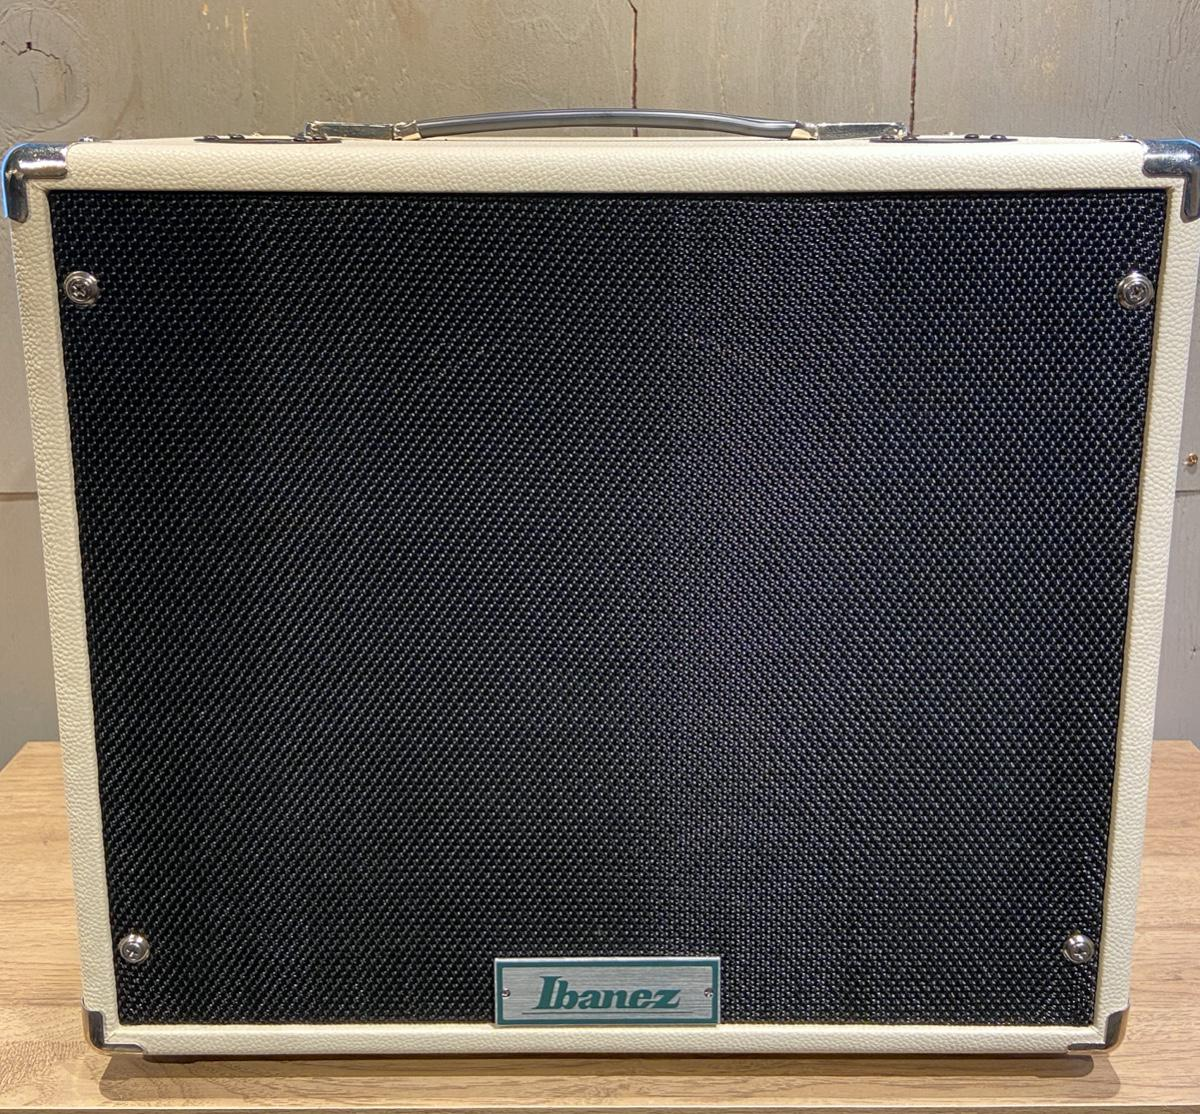 Ibanez (アイバニーズ) / Ibanez TUBE SCREAMER AMP HEAD セット